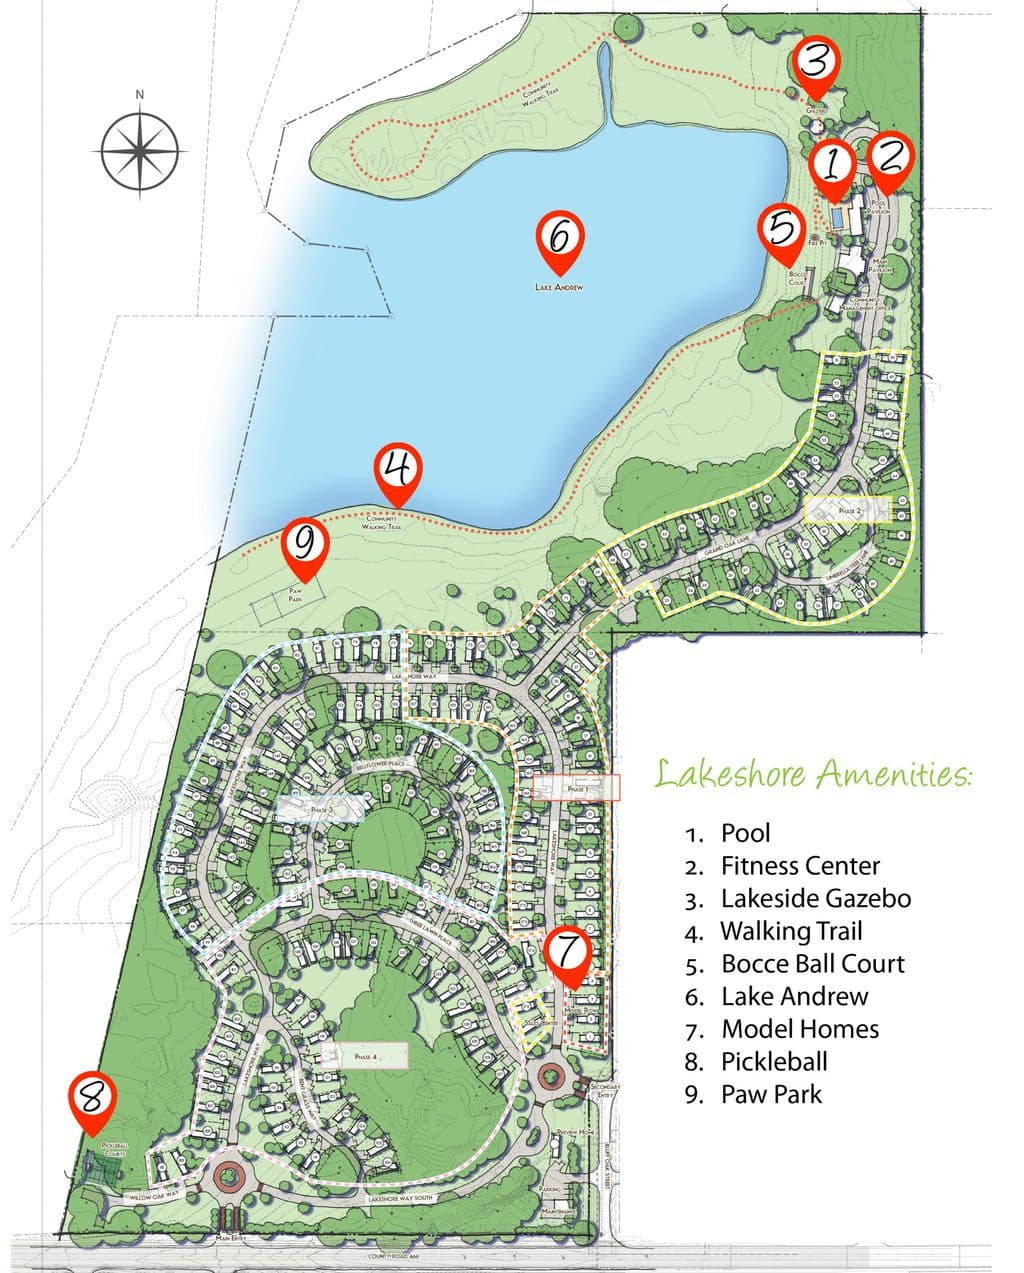 Simple Life - Lakeshore Community Map_Image Only_10-27-2020